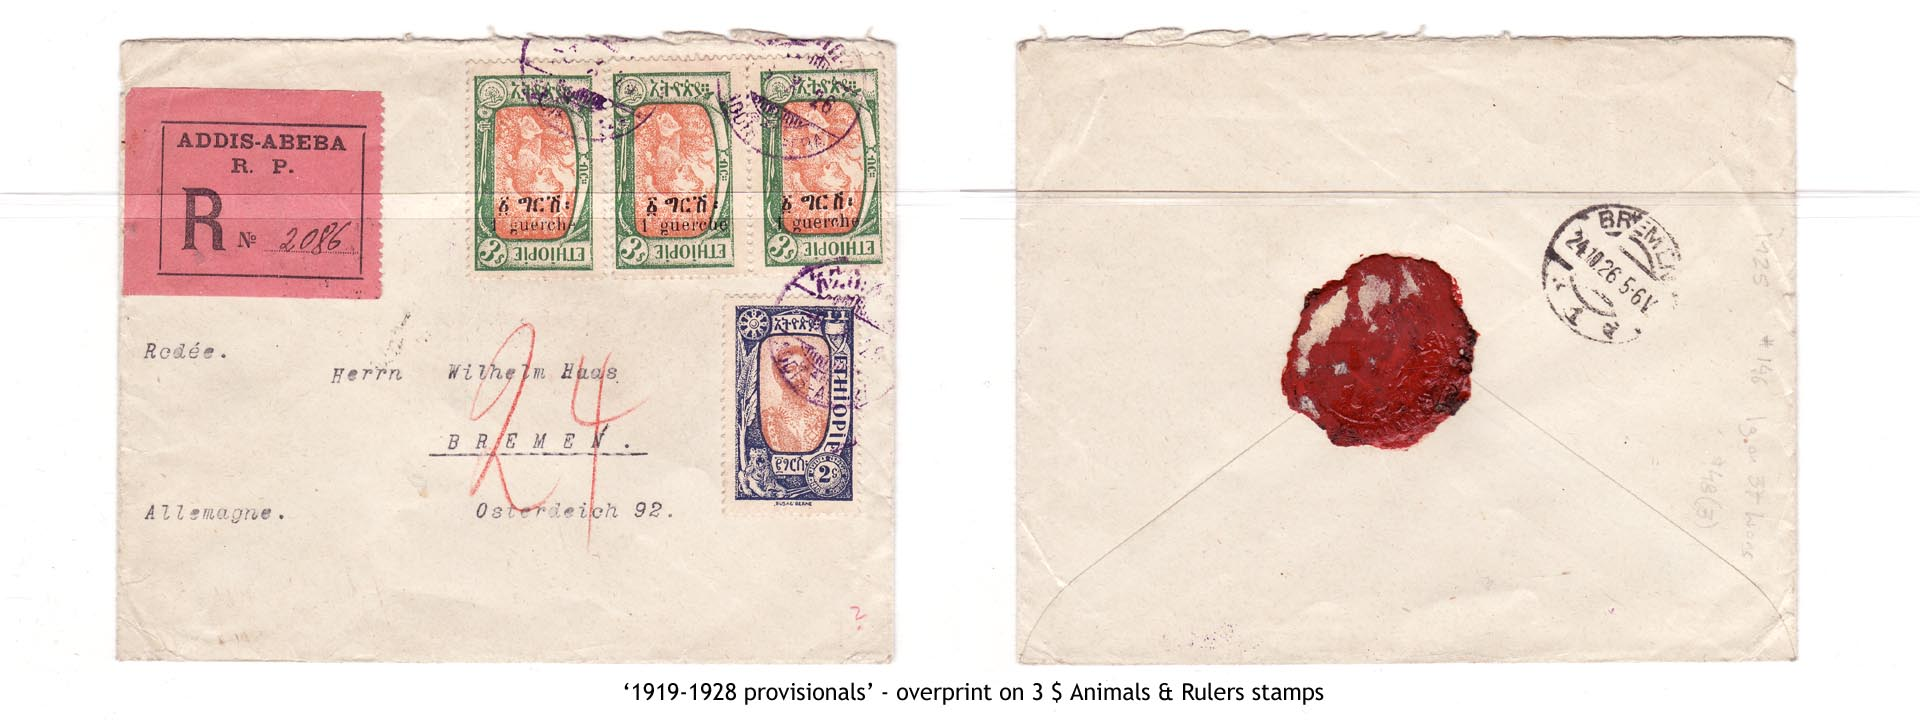 1919-1928 provisionals' – overprint on 3$ Animals & Rulers stamps